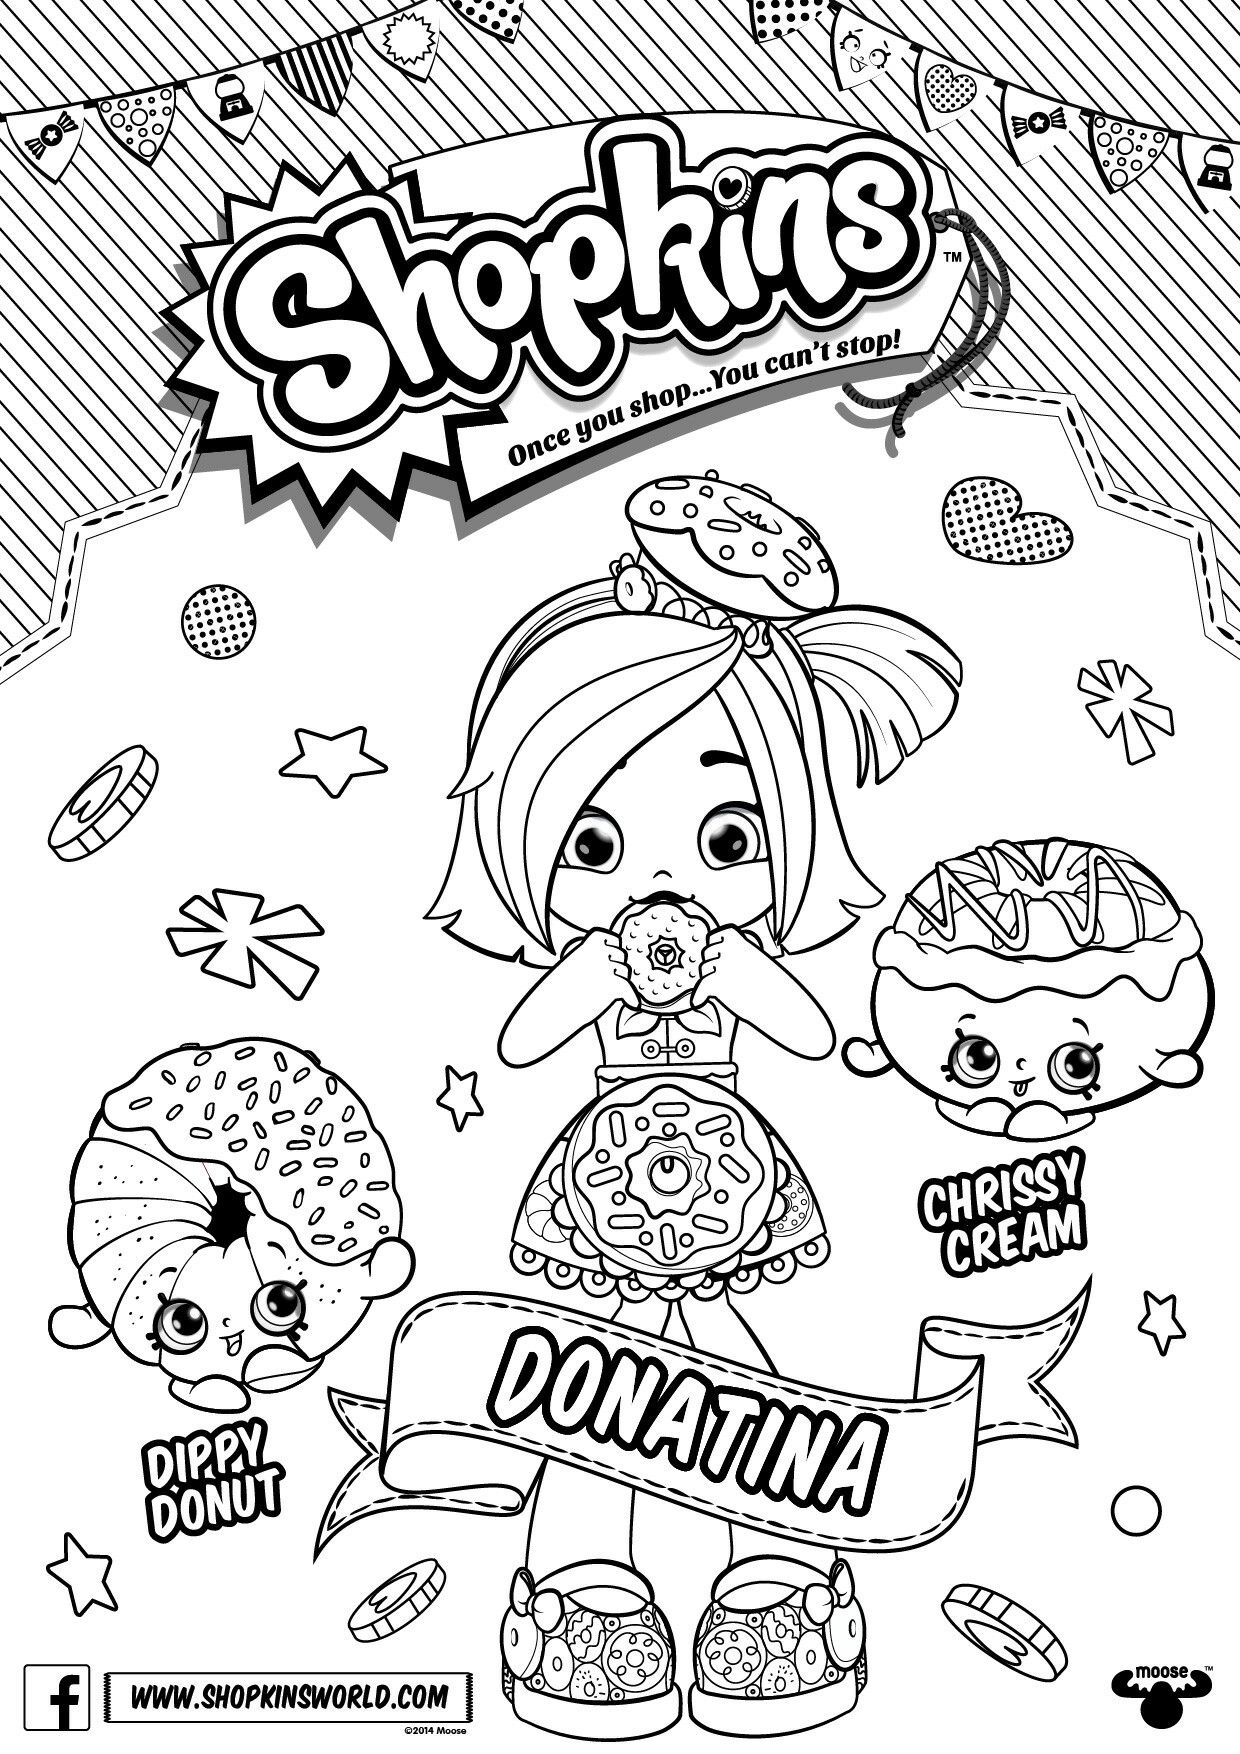 Pin By Tarri Pierse On Shopkins Coloring Sheets With Images